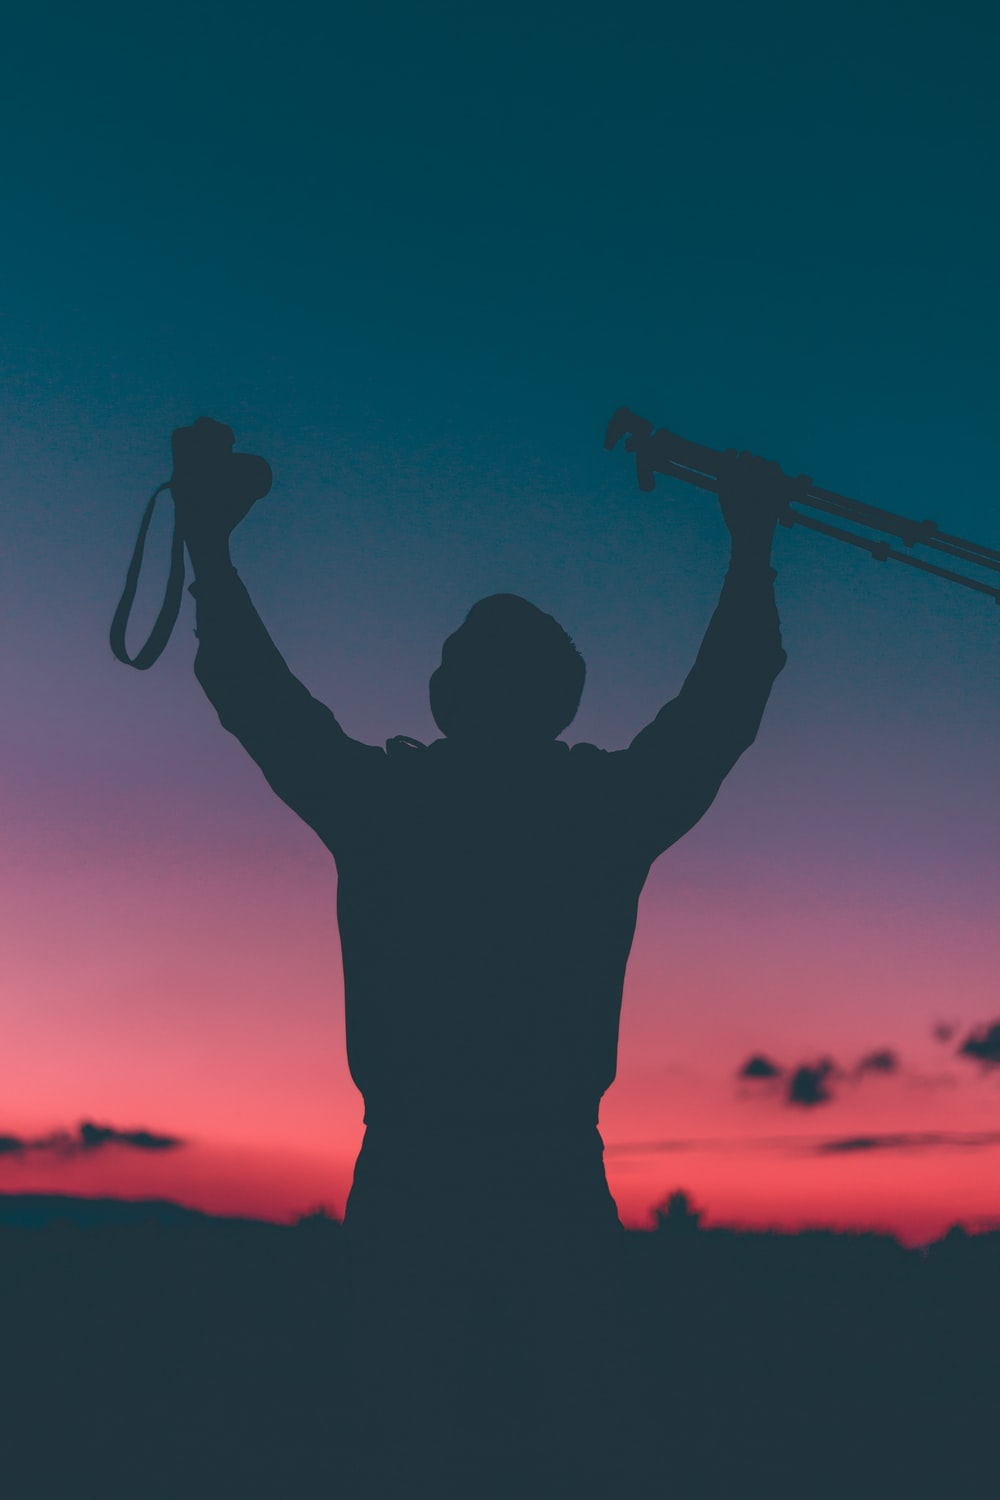 silhouette of a person raising camera and tripod with pink and blue sky